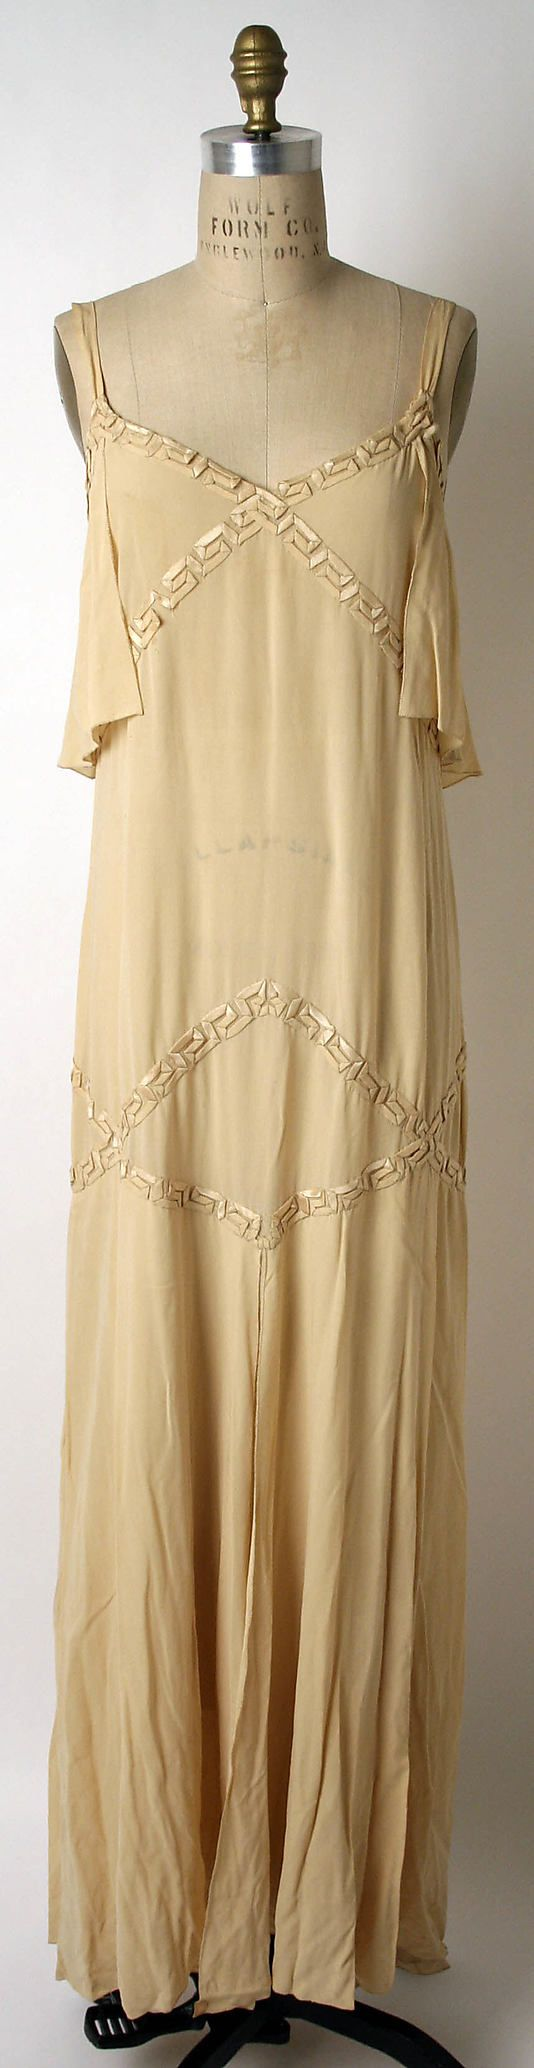 Molyneux Dress - 1926 - by Edward Molyneux (French (born England), 1891-1974) - Silk: